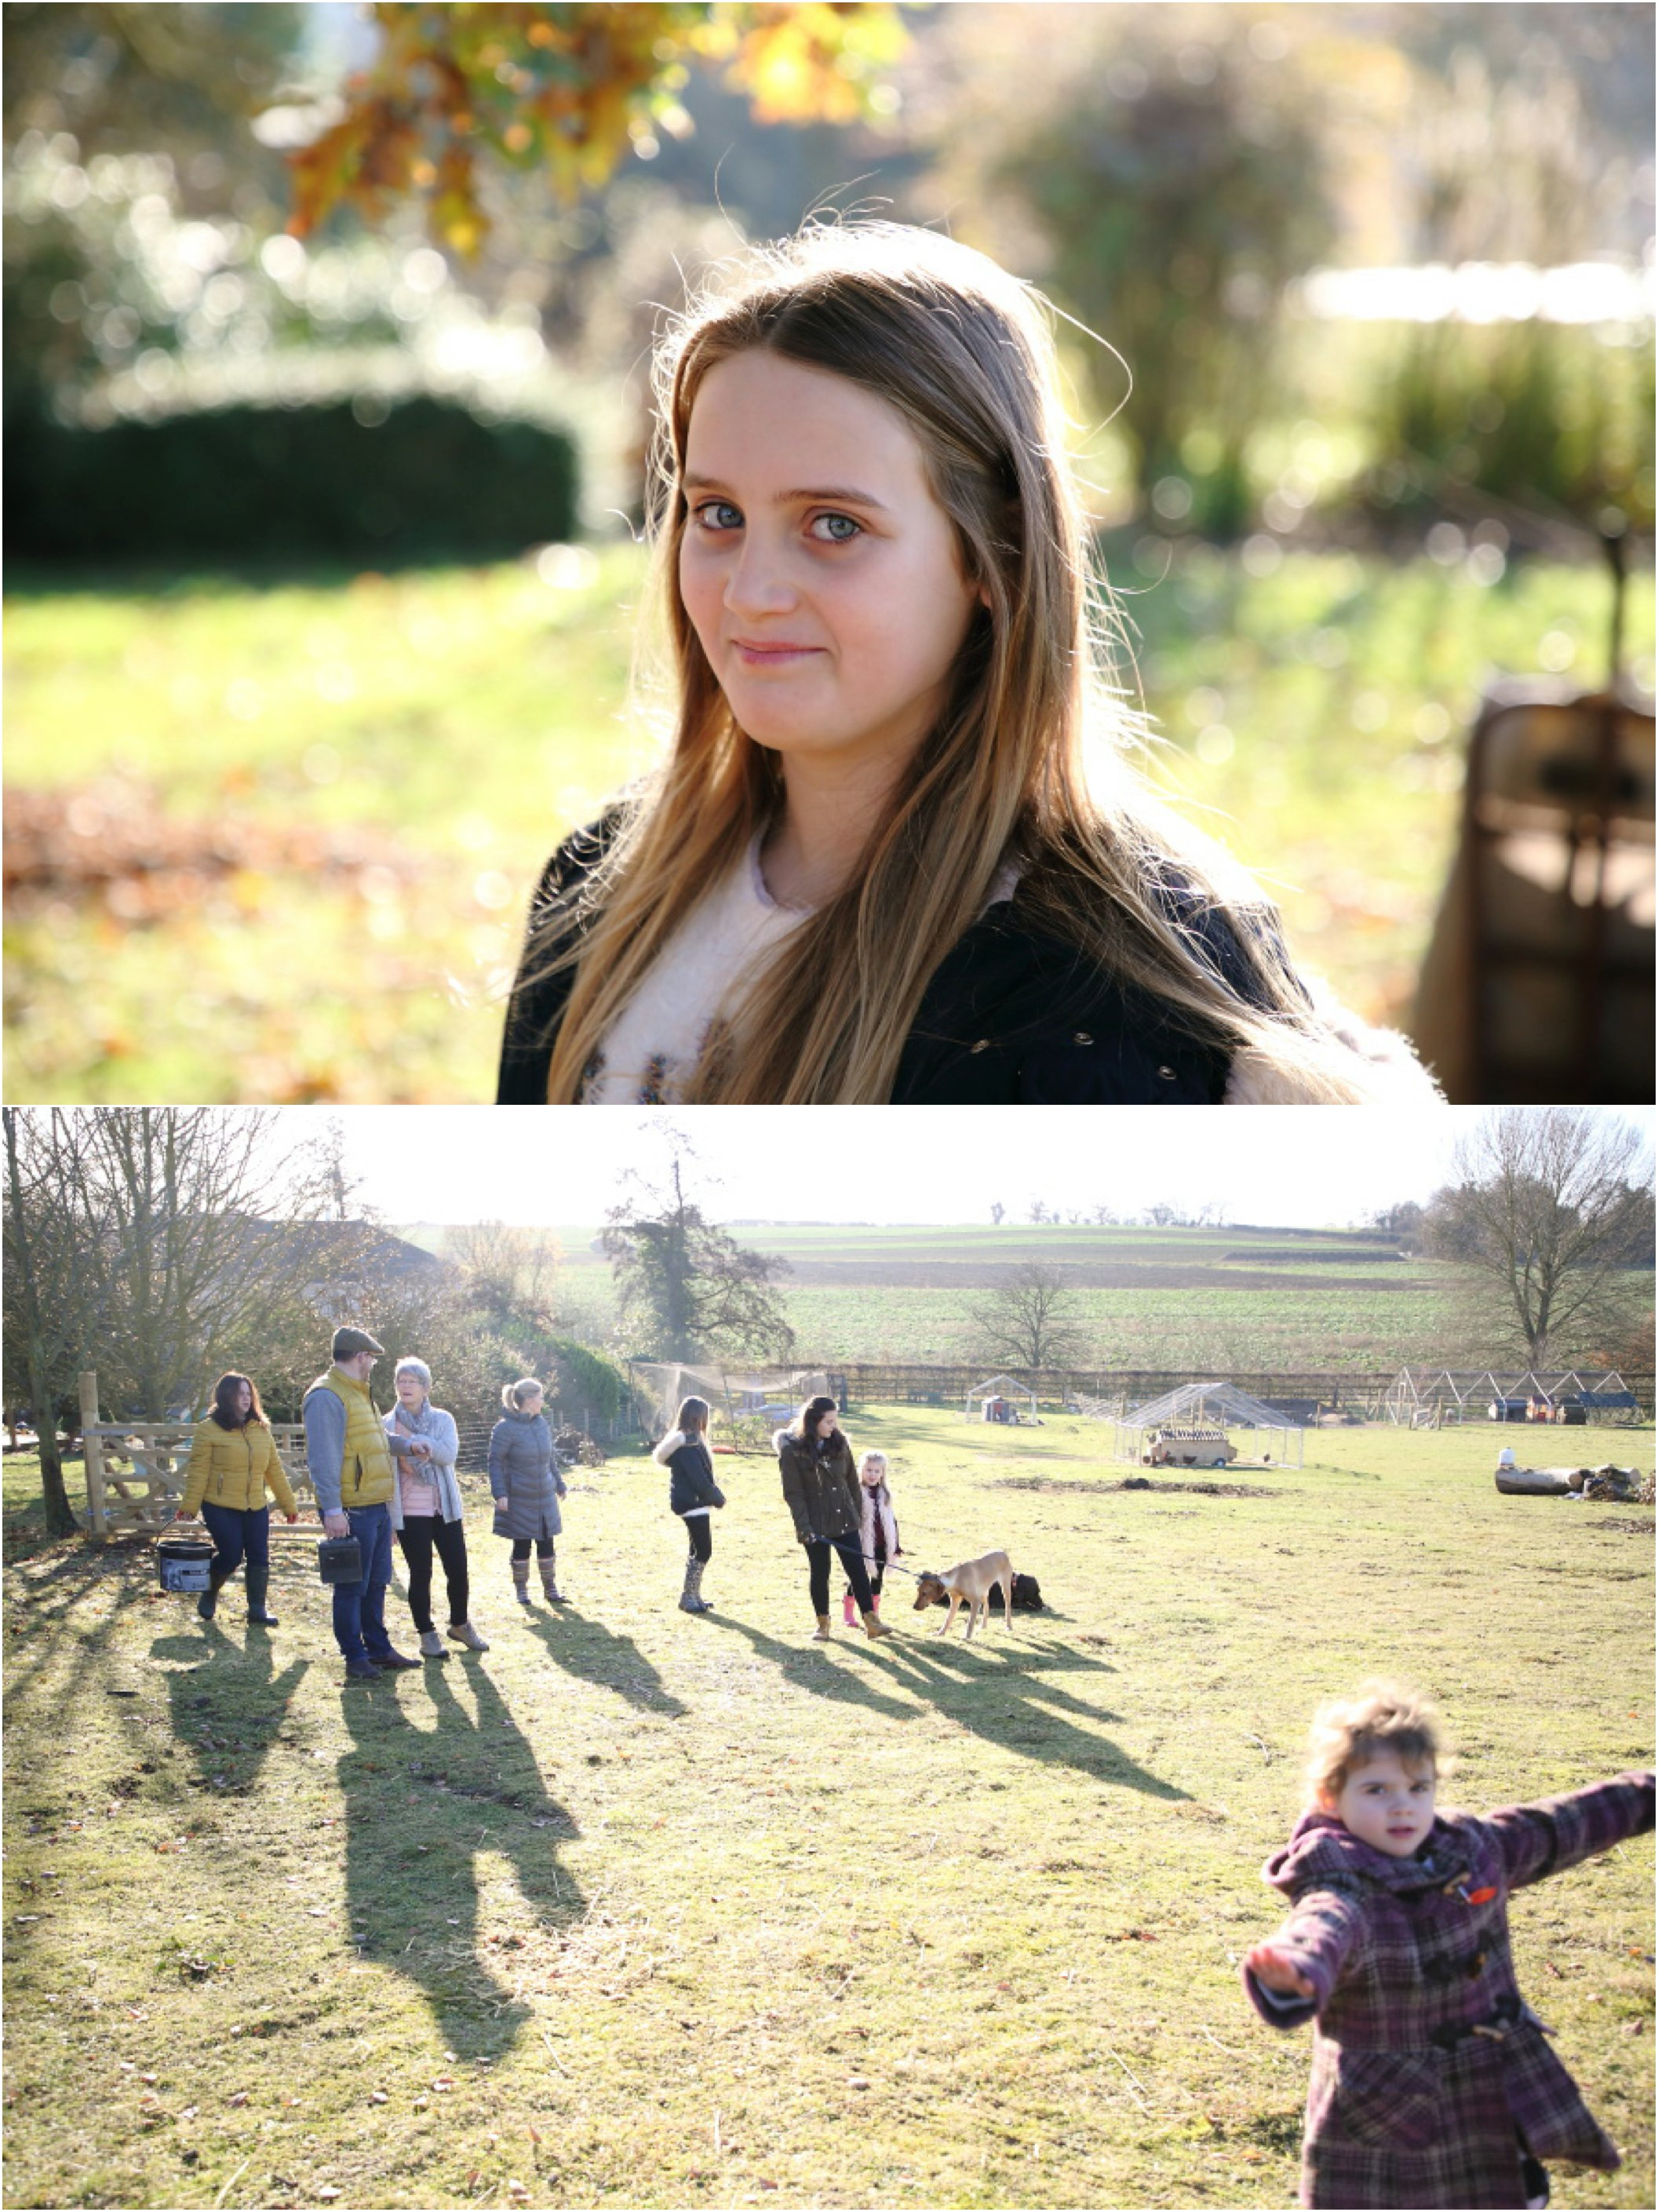 natural fun photography on farm with lovely family, suffolk winter photo shoot